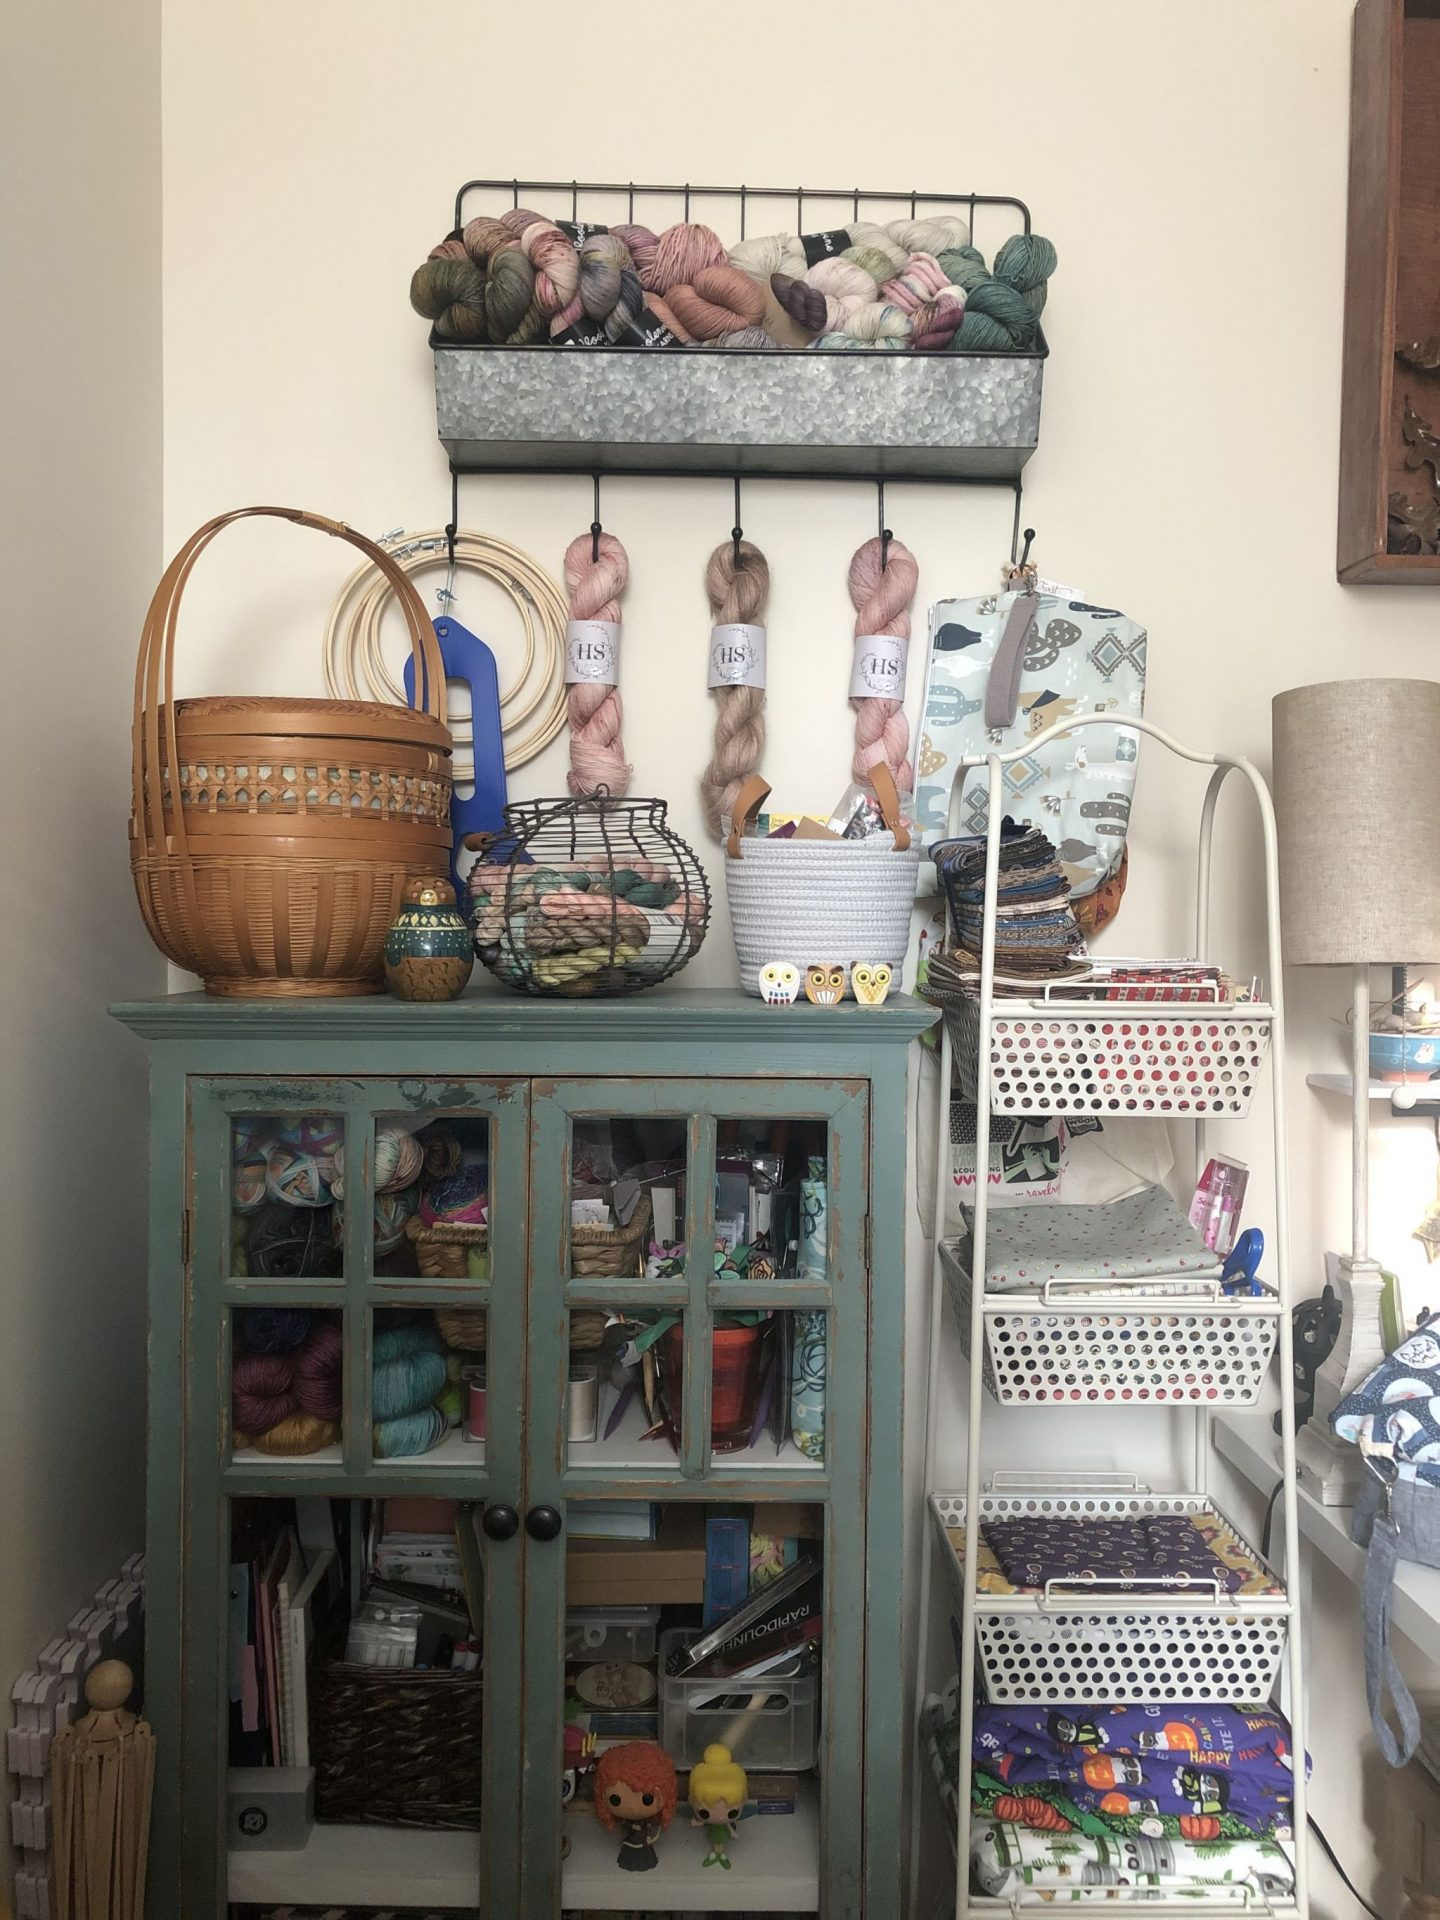 North Carolina blogger Rebecca Lately shares her office and guest room inspiration. If you need to combine an office, guest room & craft room, check it out!